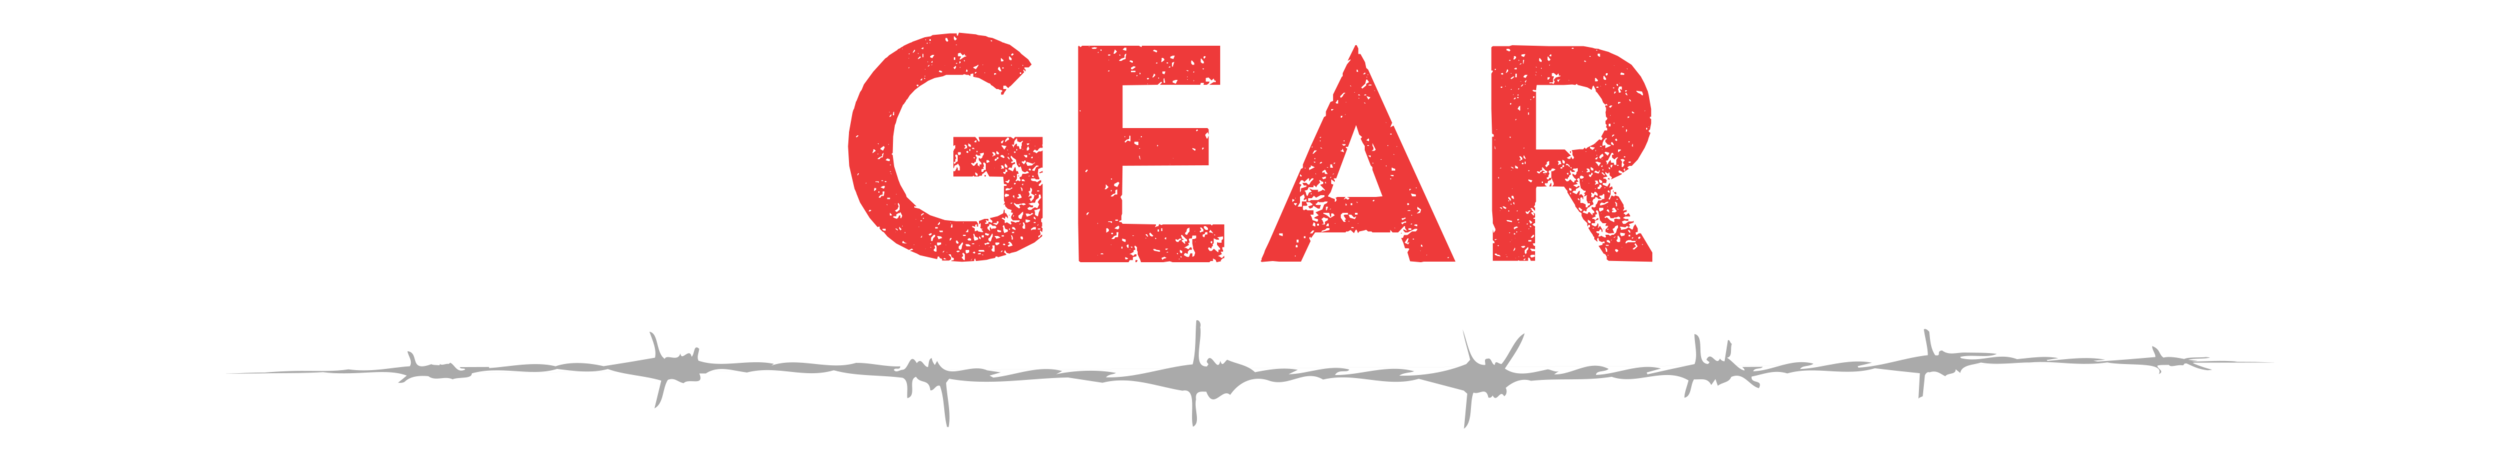 Gear.png